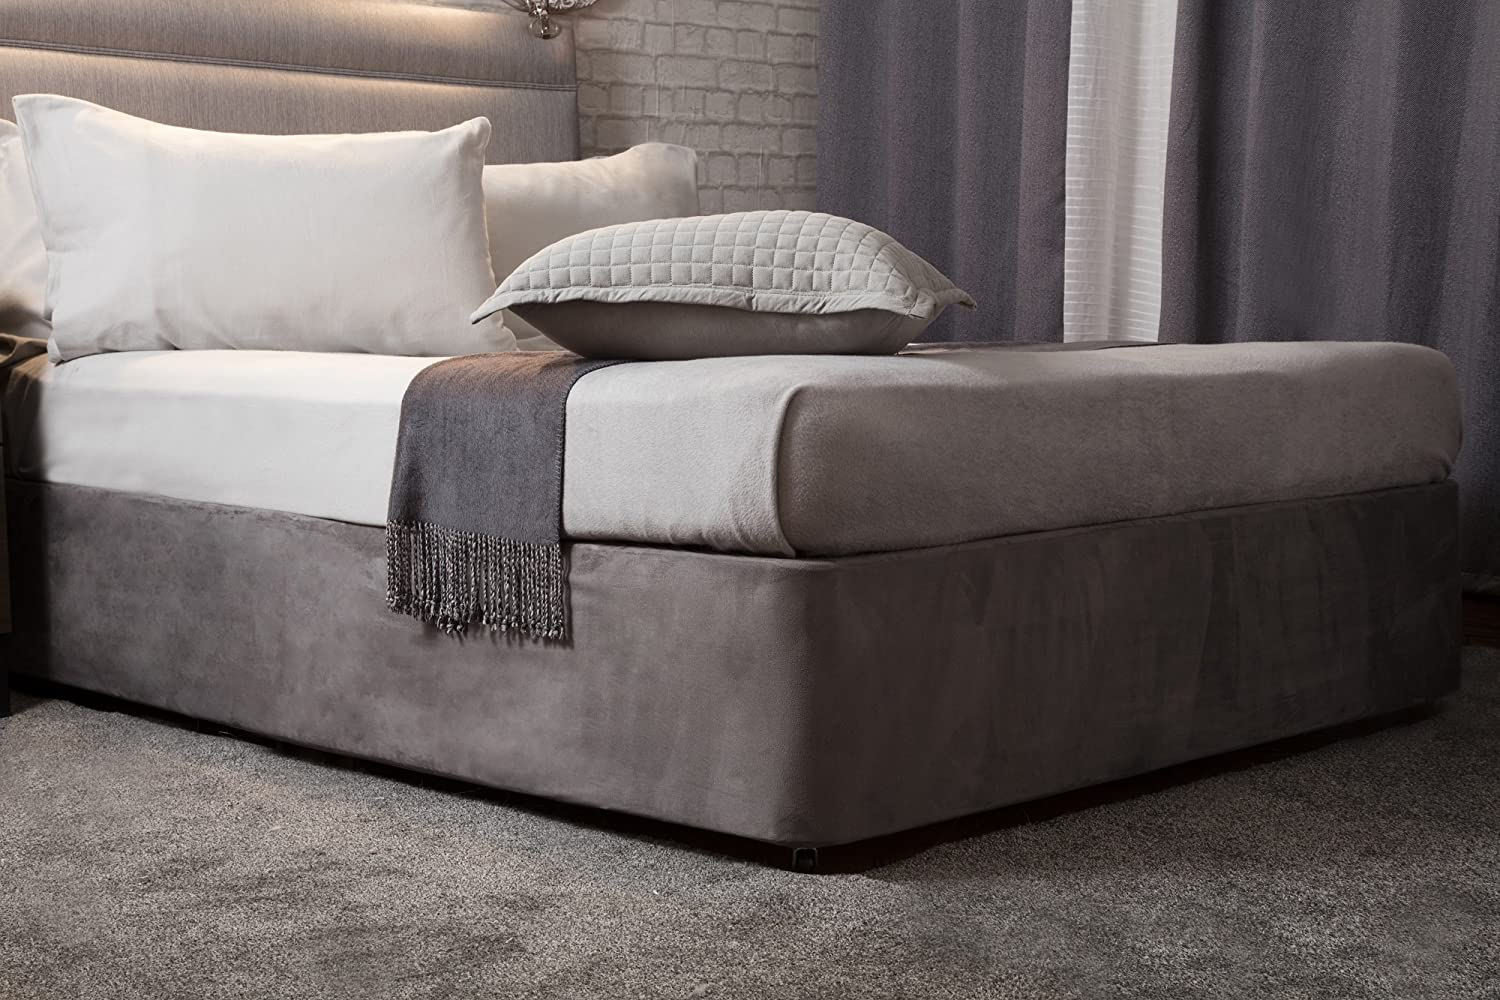 Transforms a drab looking bed base divan Charcoal, King Luxury Faux Suede Belledorm 19 Extra Deep Base Wrap Valance Sheet